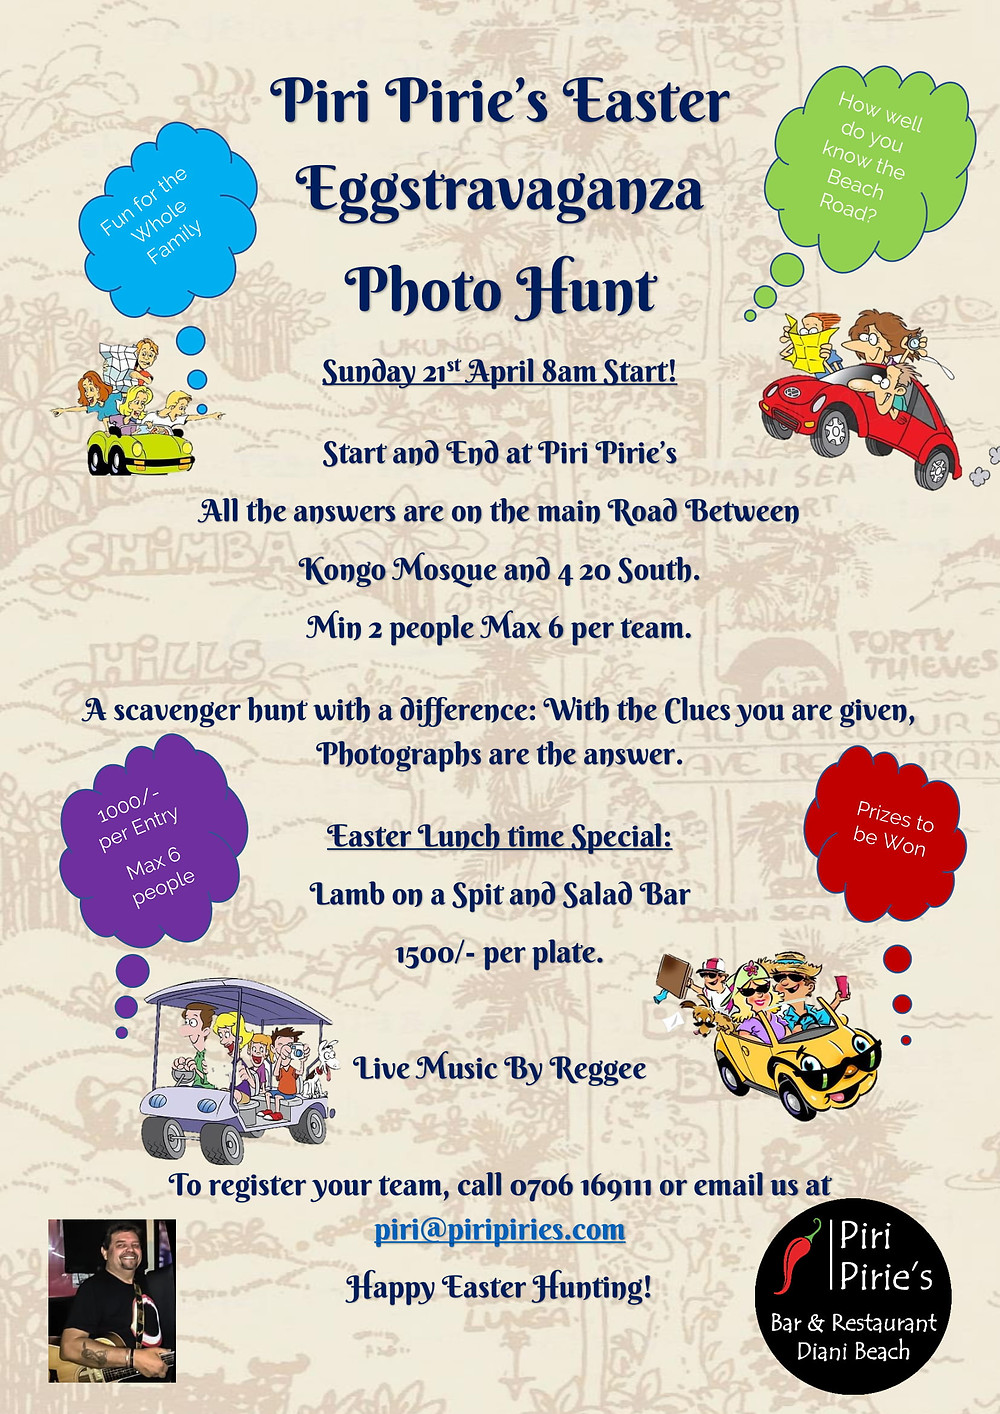 Easter Eggstravaganza Photo Hunt Sun 21st April